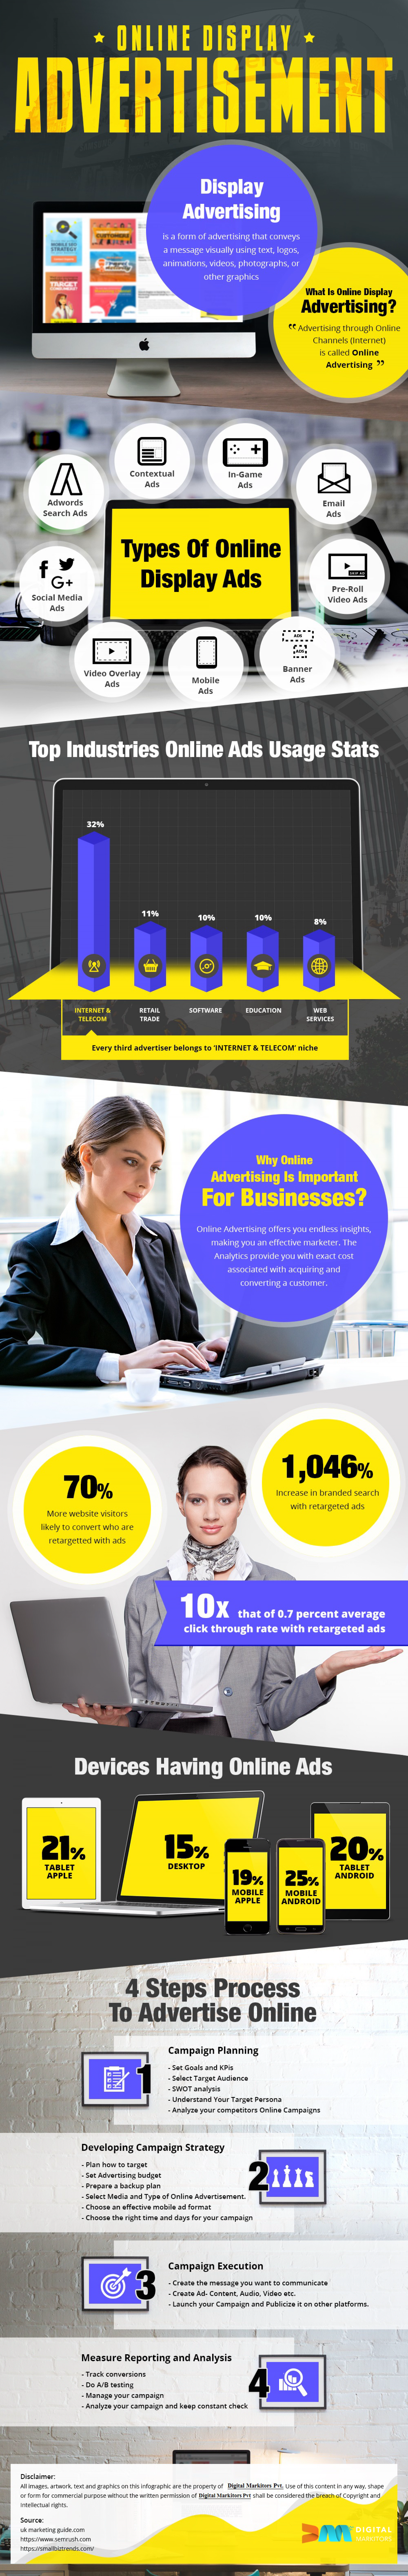 Why Online advertising is Important for Businesses? Infographic